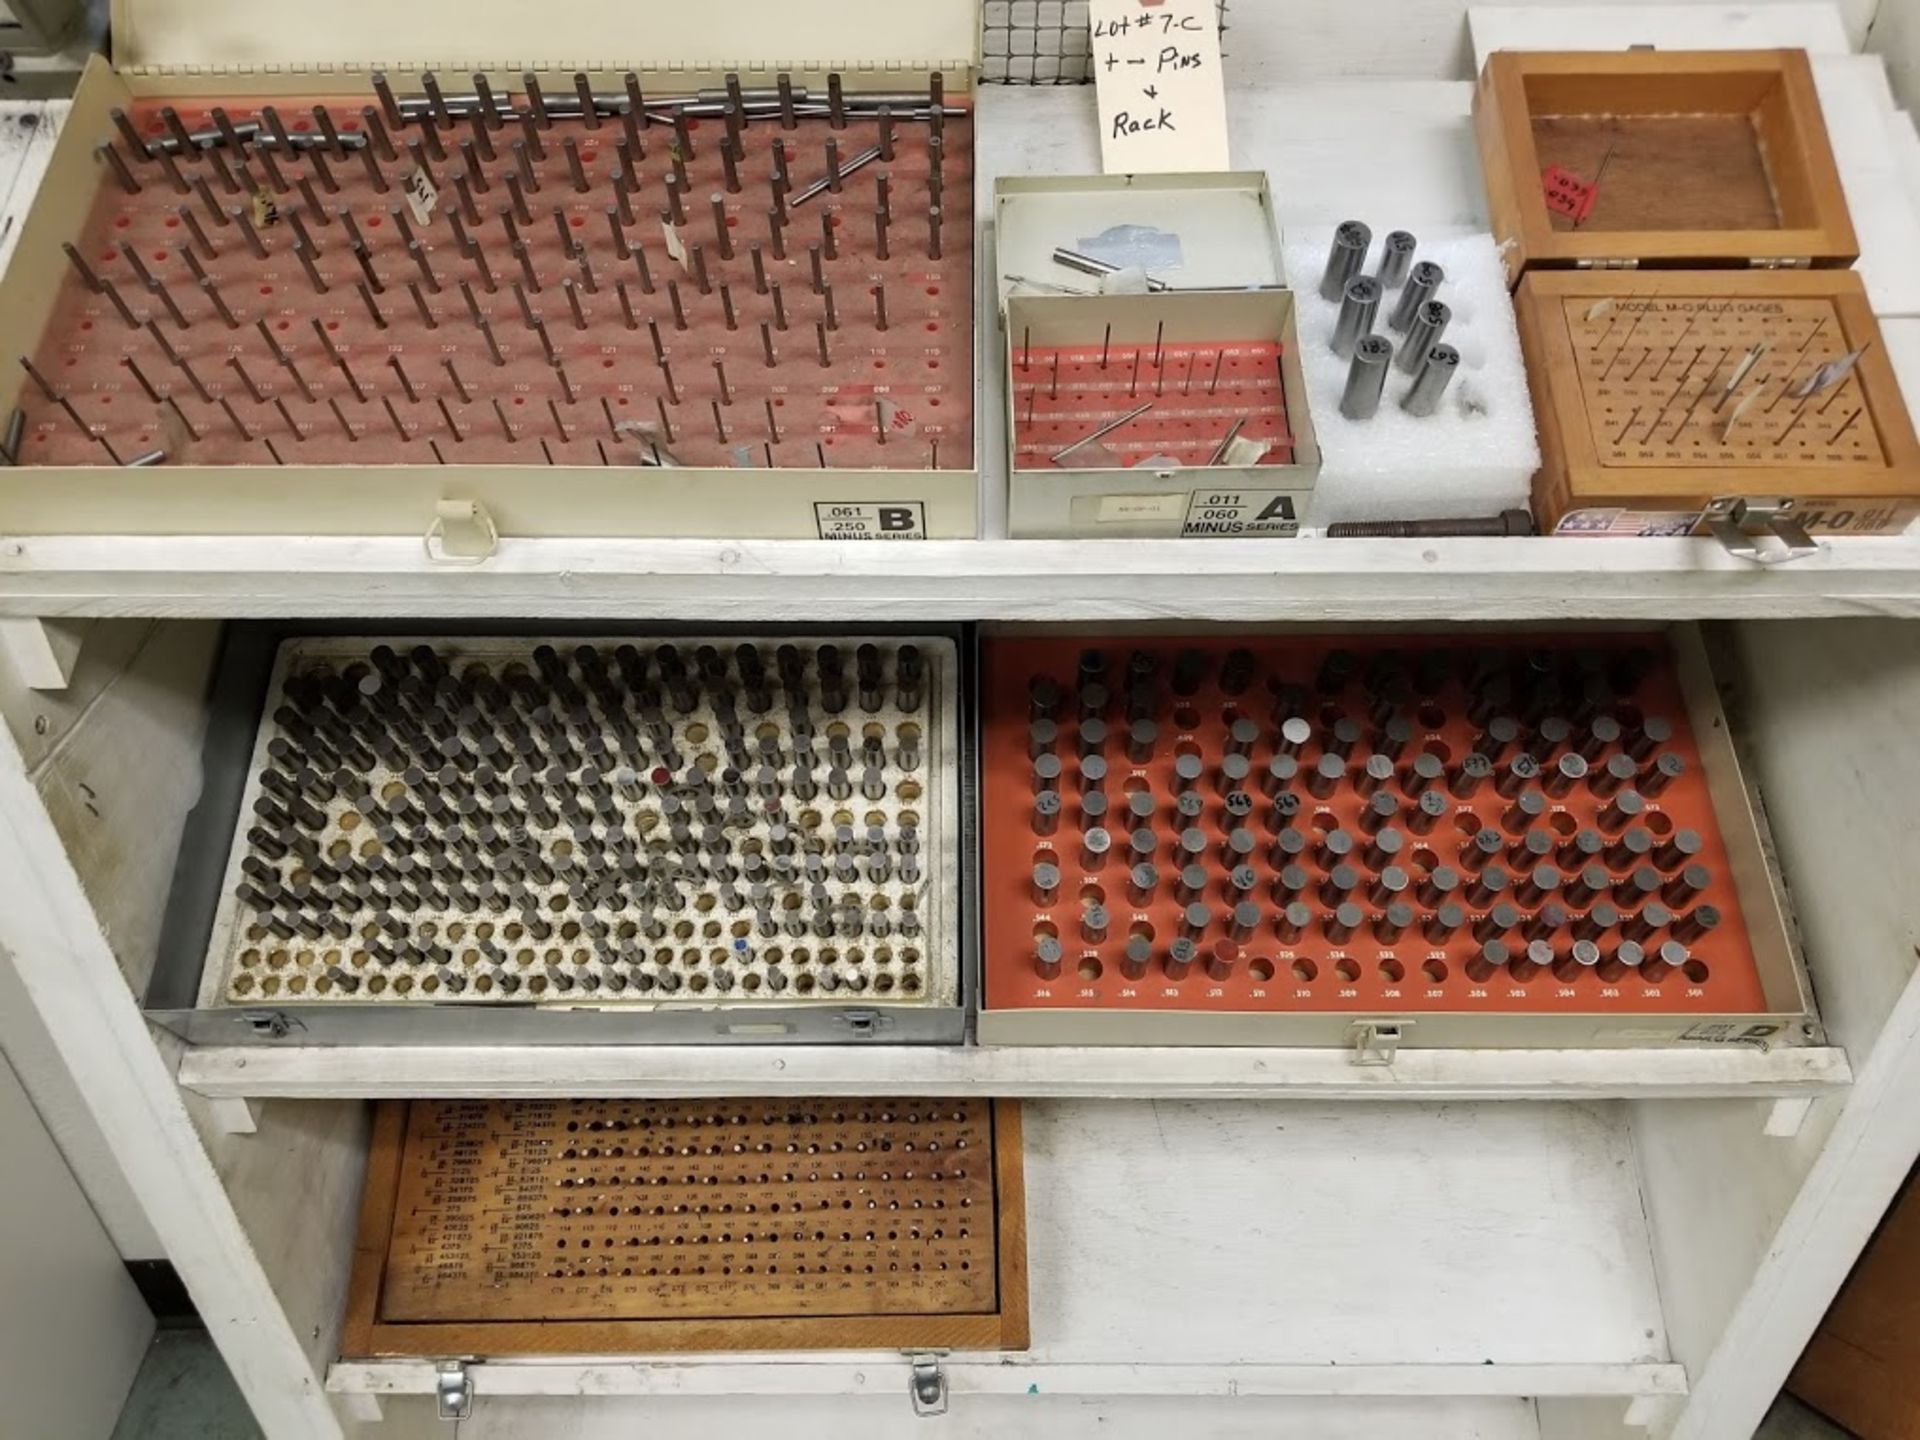 Lot 7C - Rack with Sheves of + - Pins